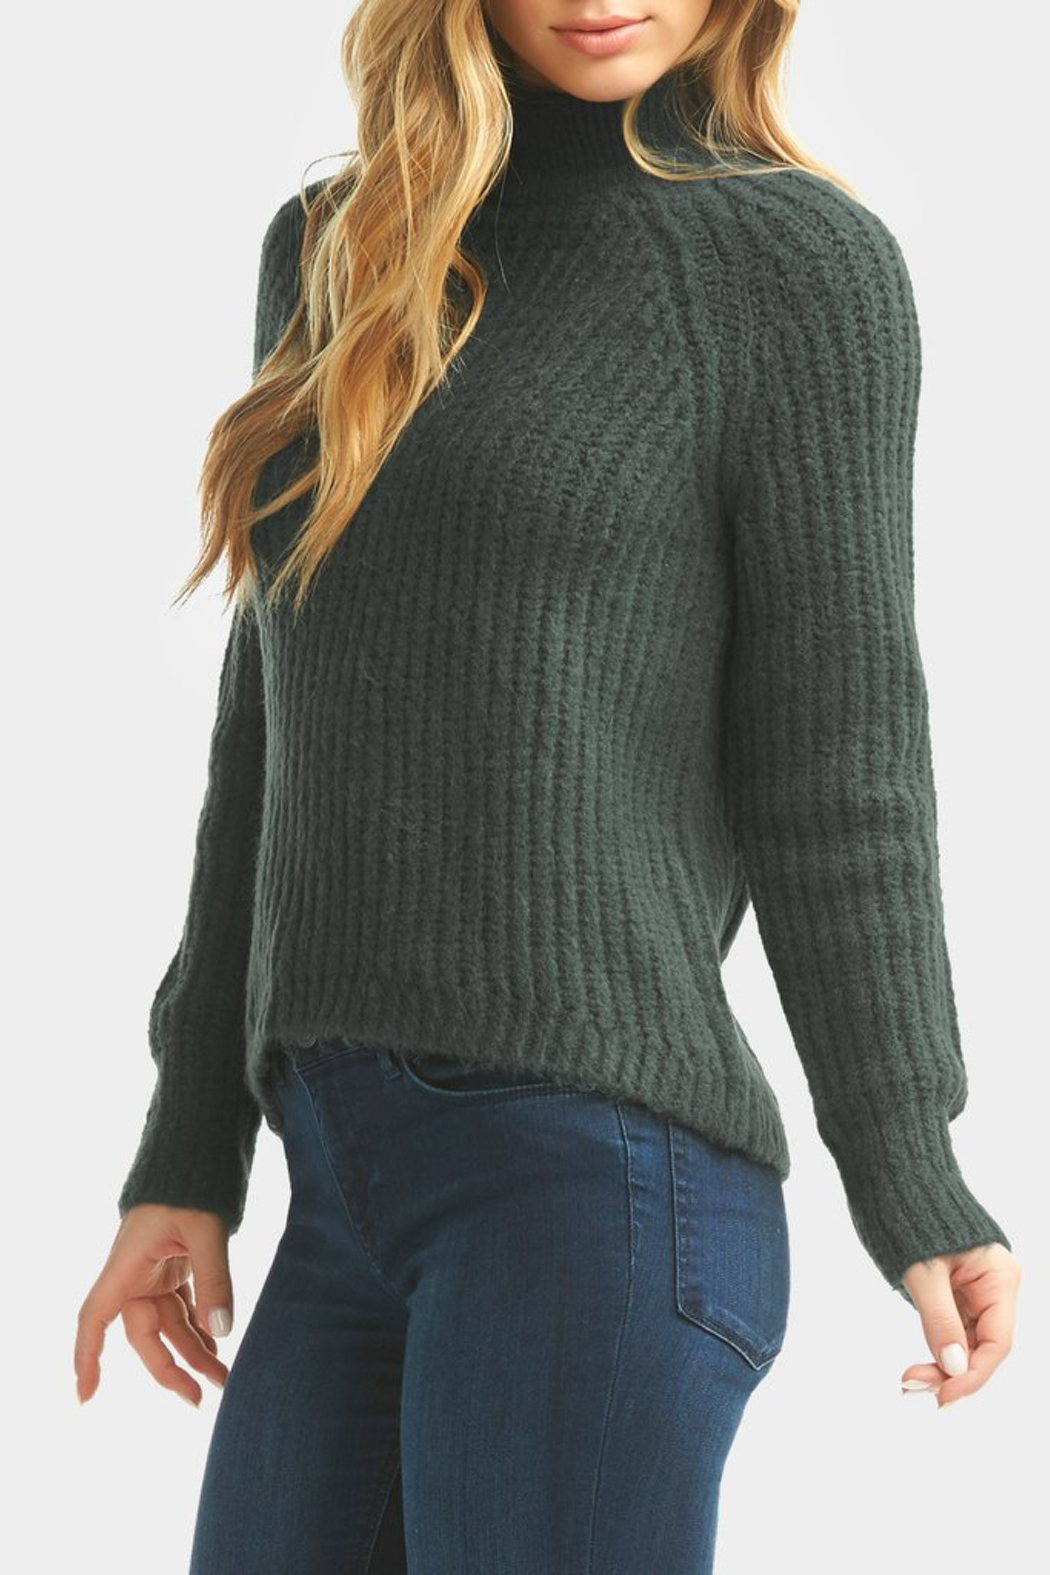 Tart Collections Cati Mock Neck Sweater - Back Cropped Image